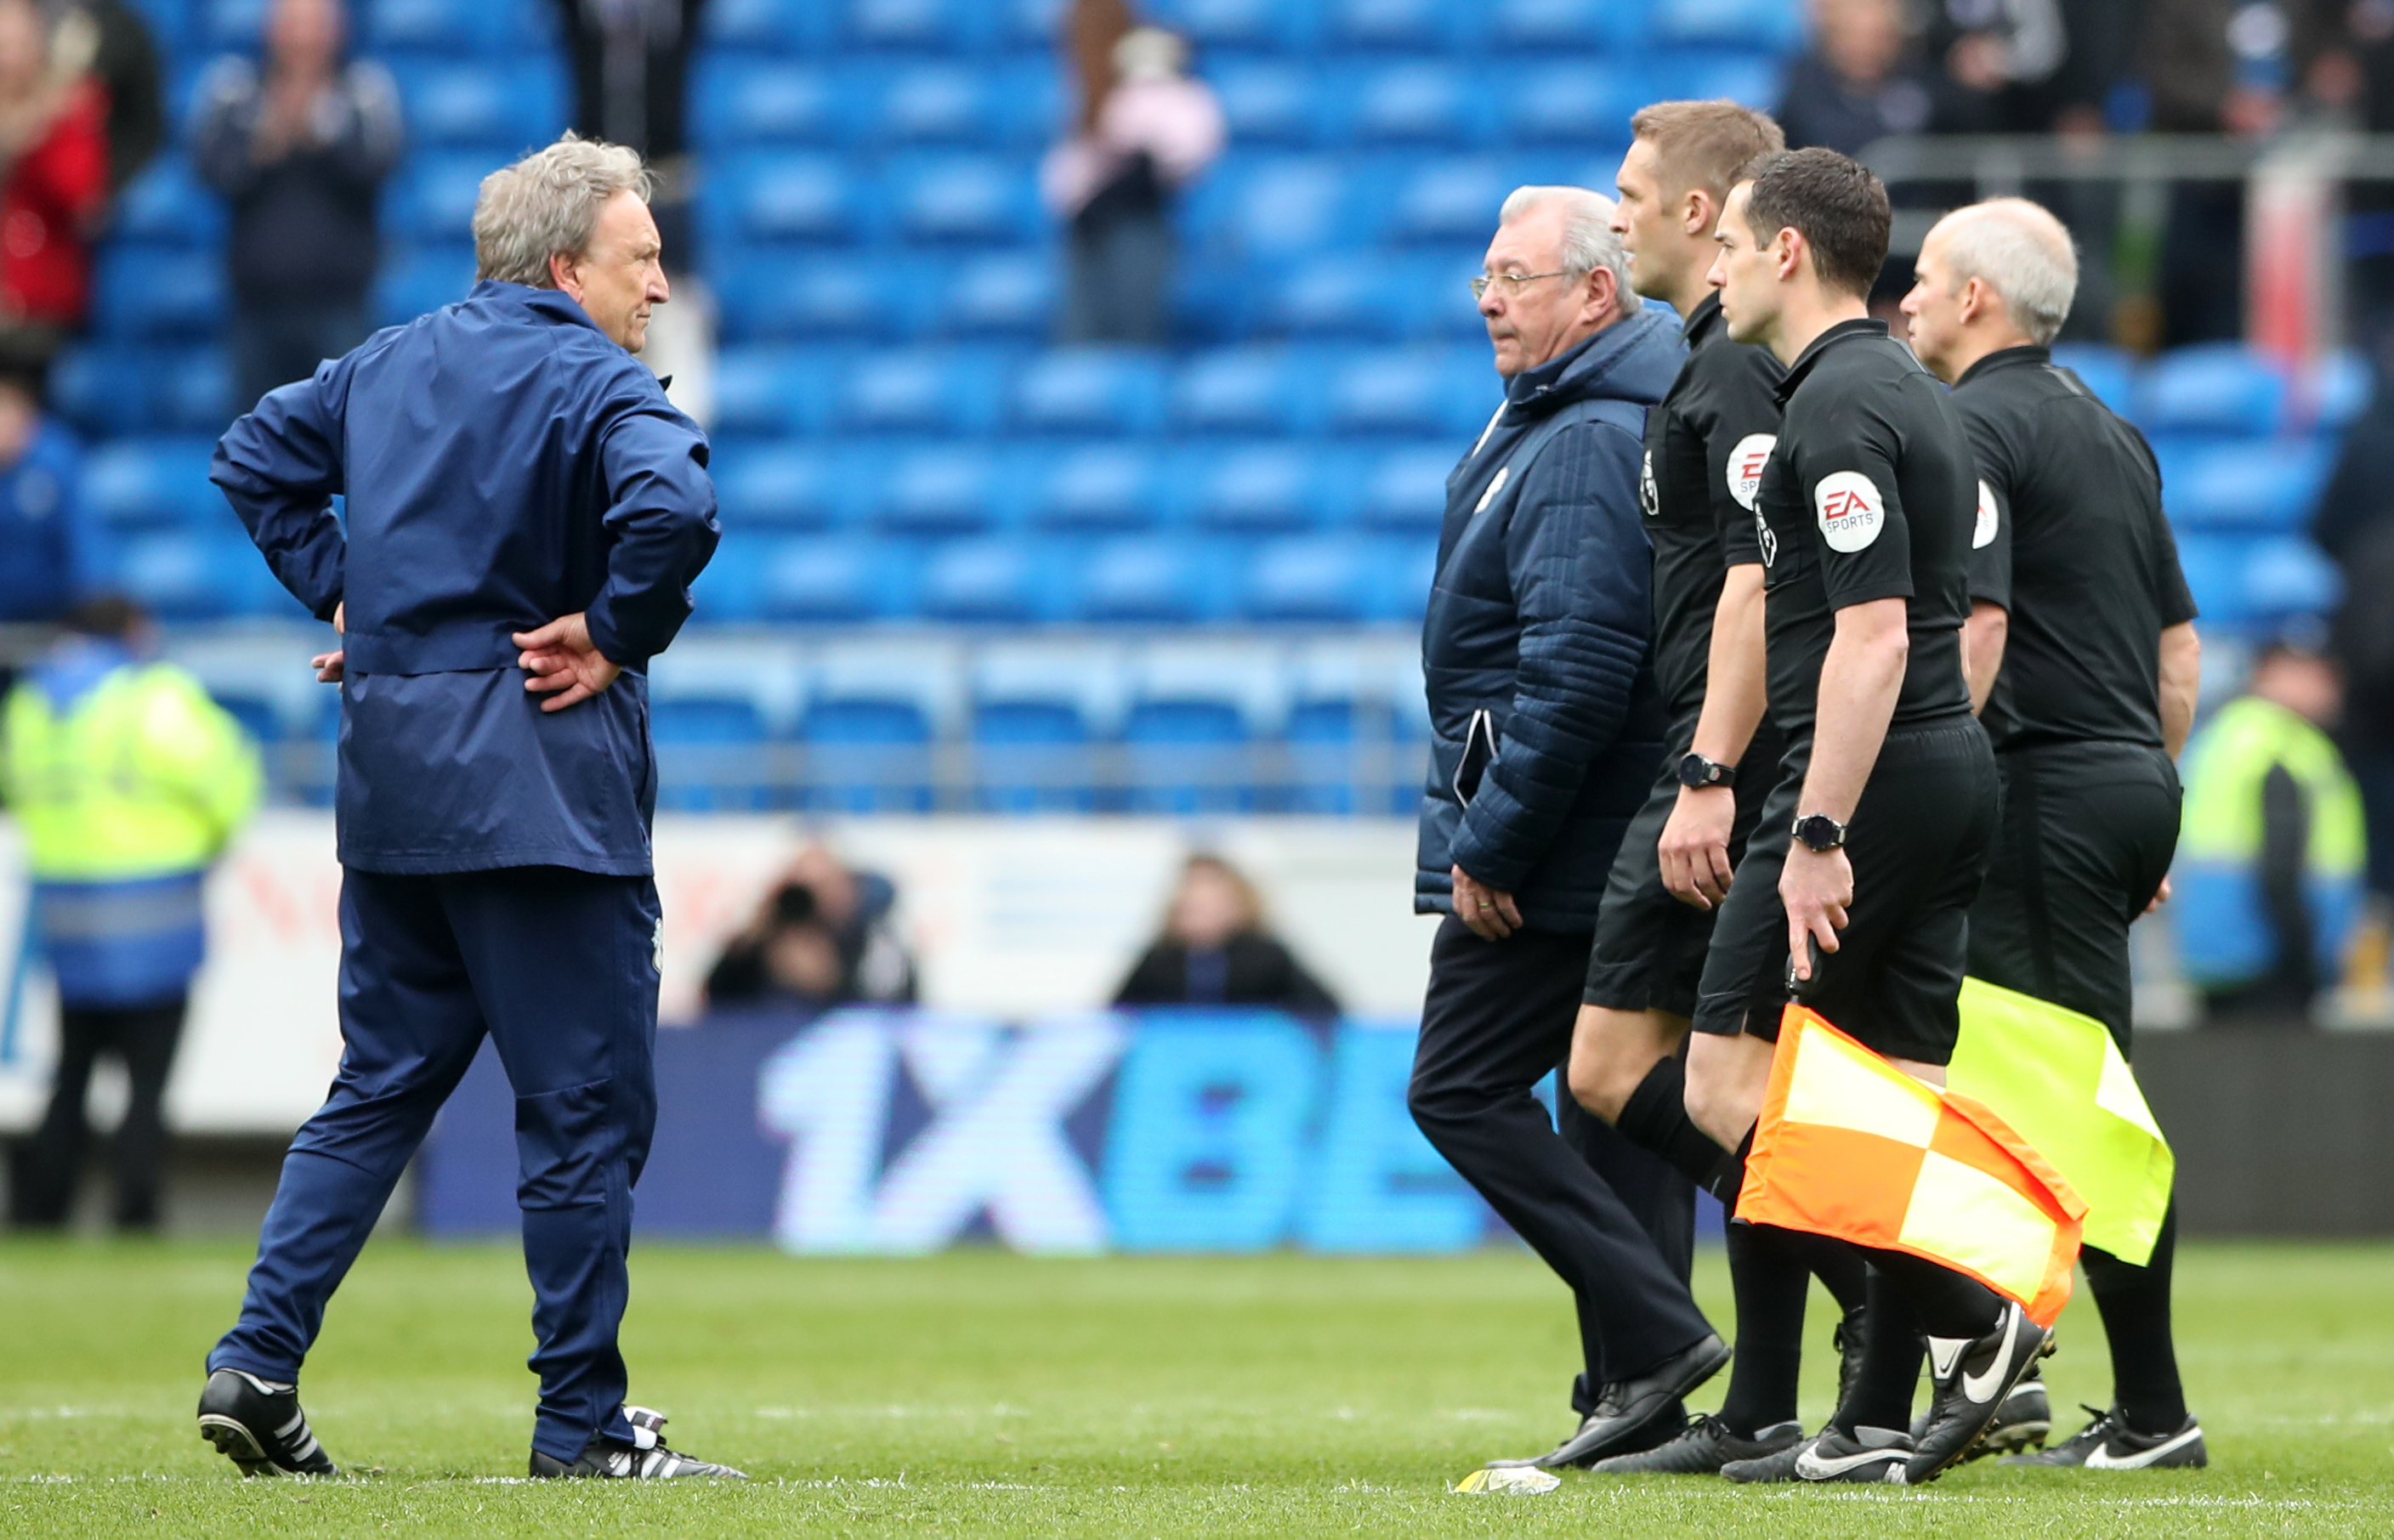 Warnock was not happy at all. Image: PA Images